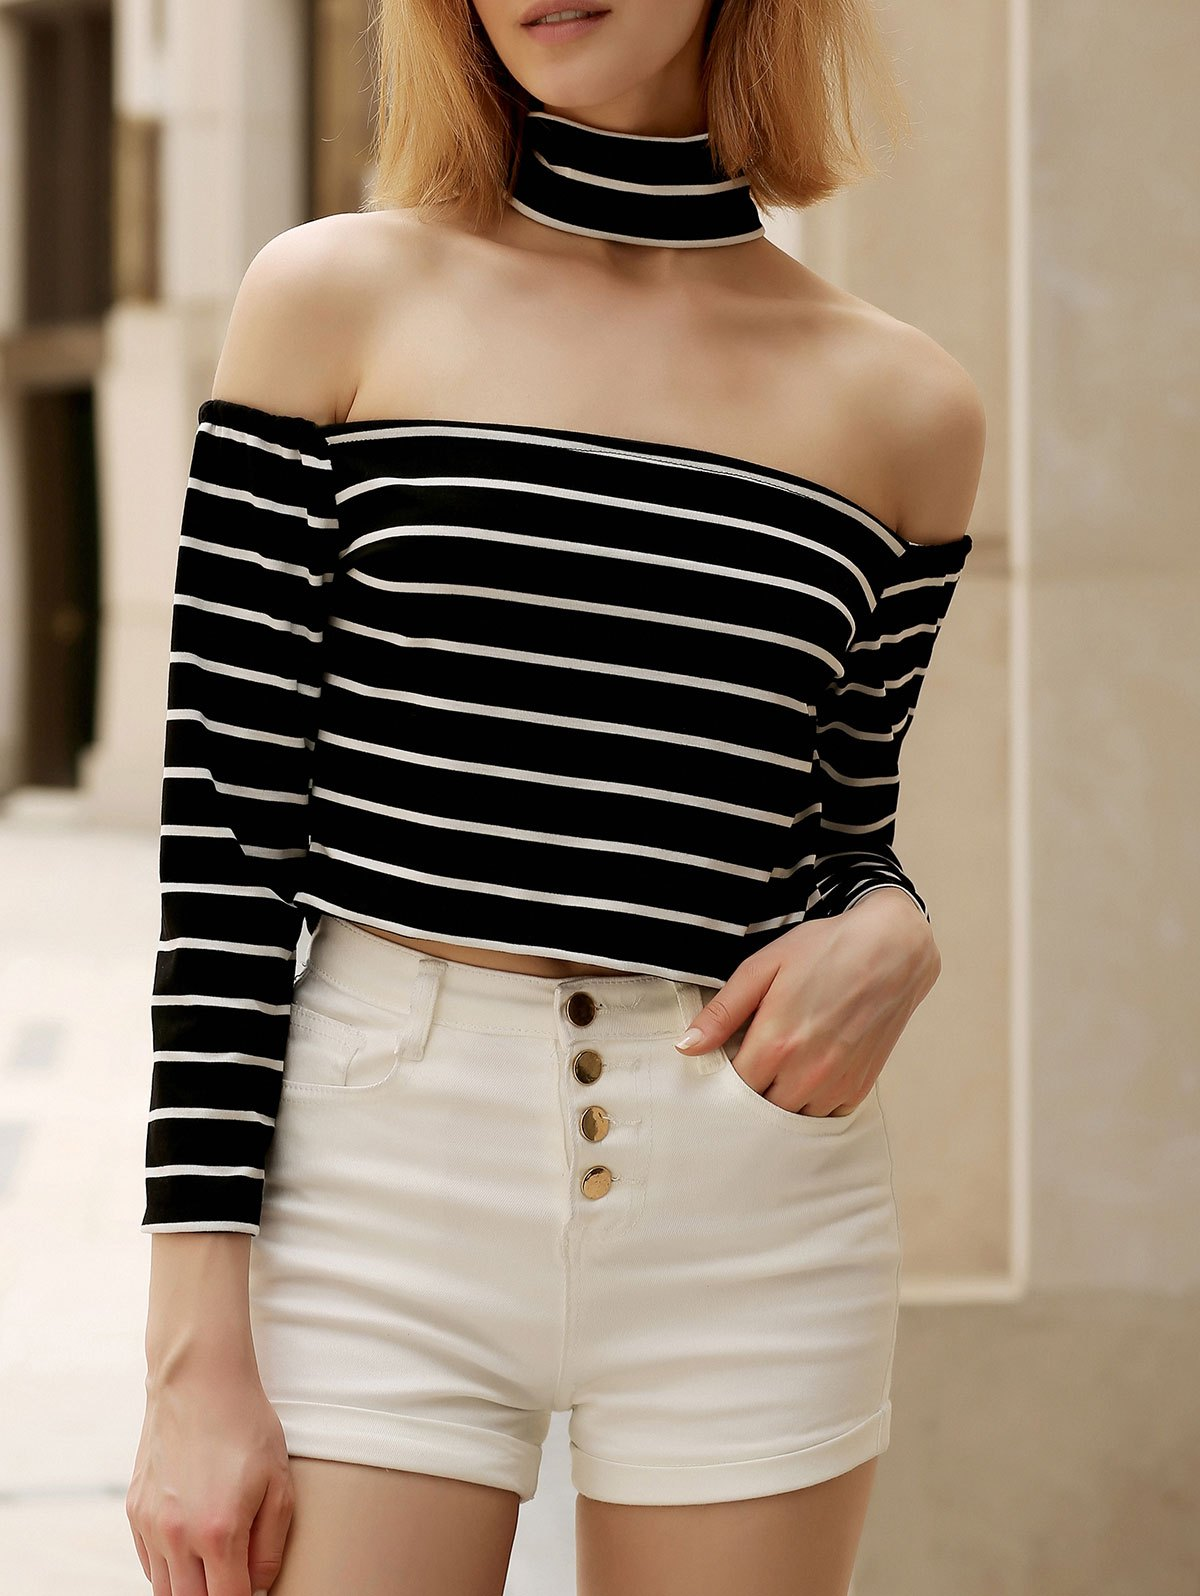 Chic Turtleneck Long Sleeve Striped Zippered Women's Crop Top - BLACK S